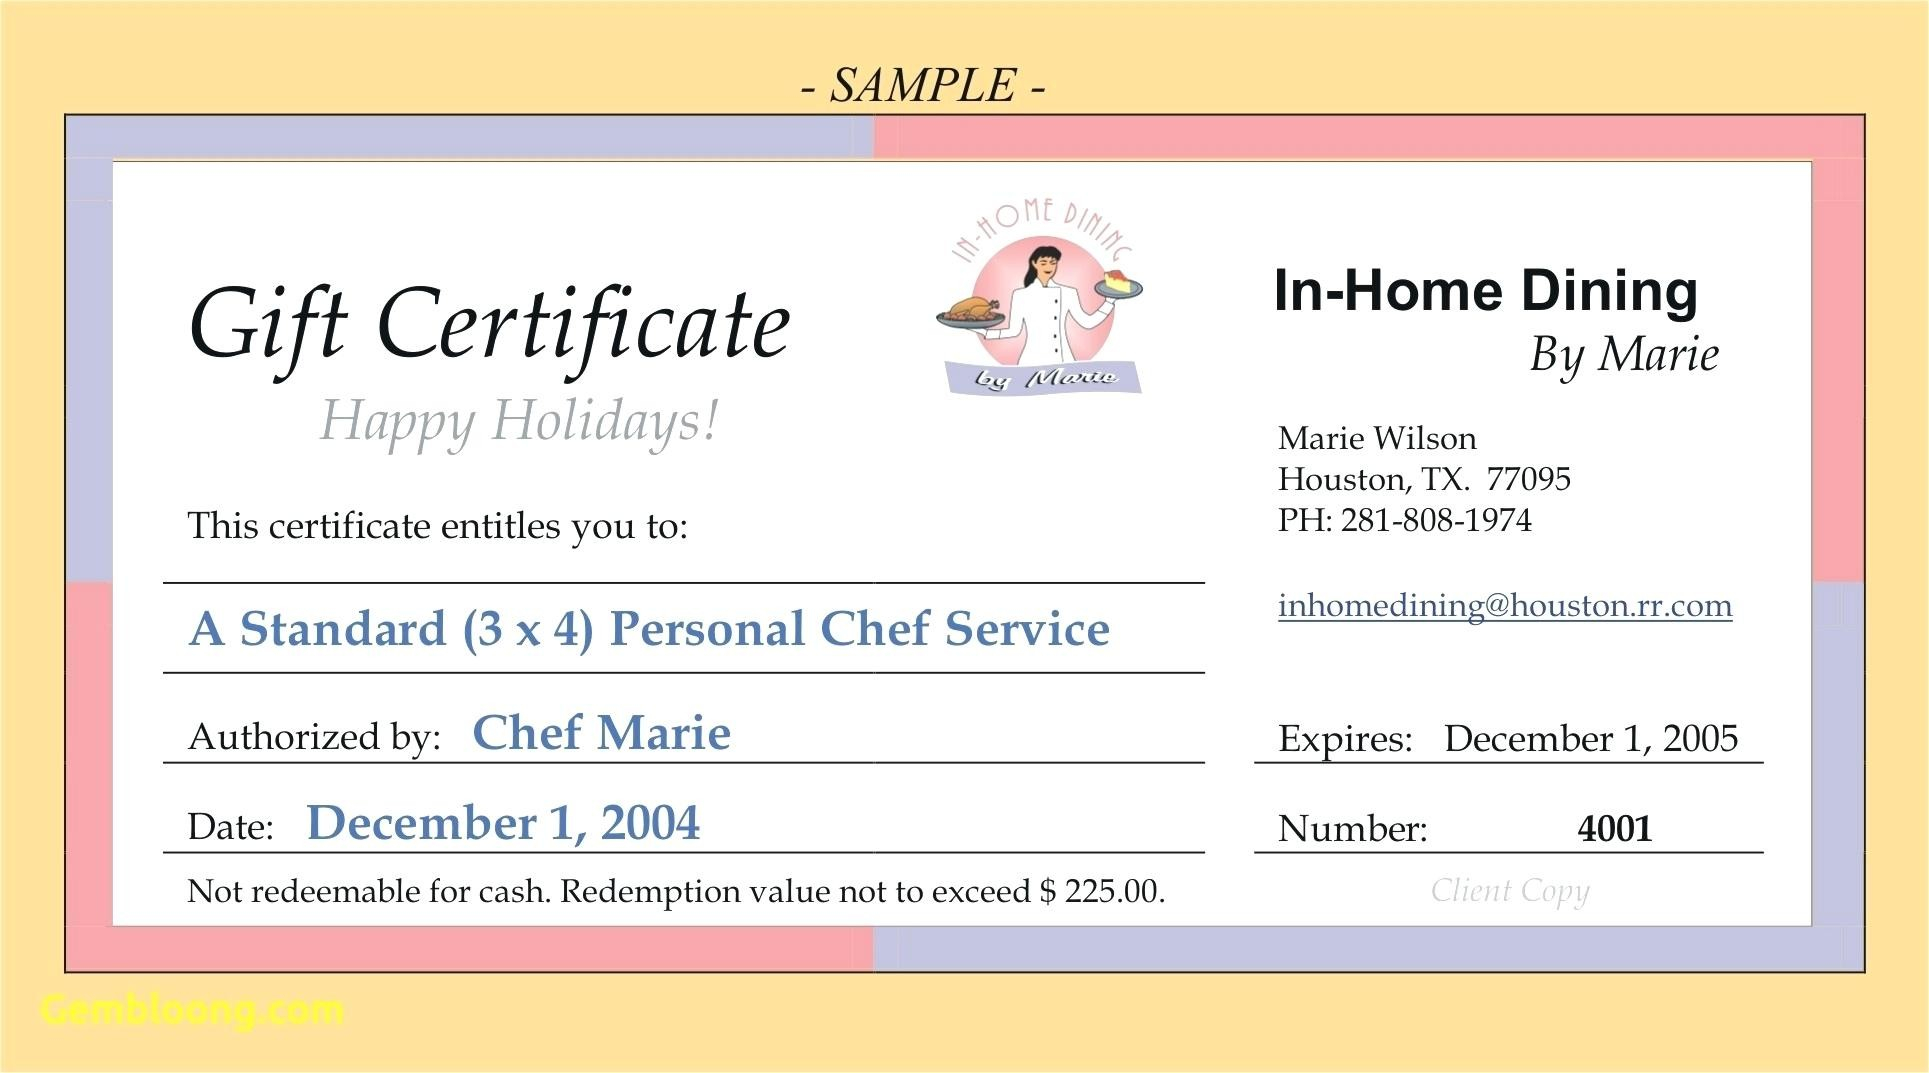 Certificate Templates Free Uk Filename  Elsik Blue Cetane Within This Entitles The Bearer To Template Certificate